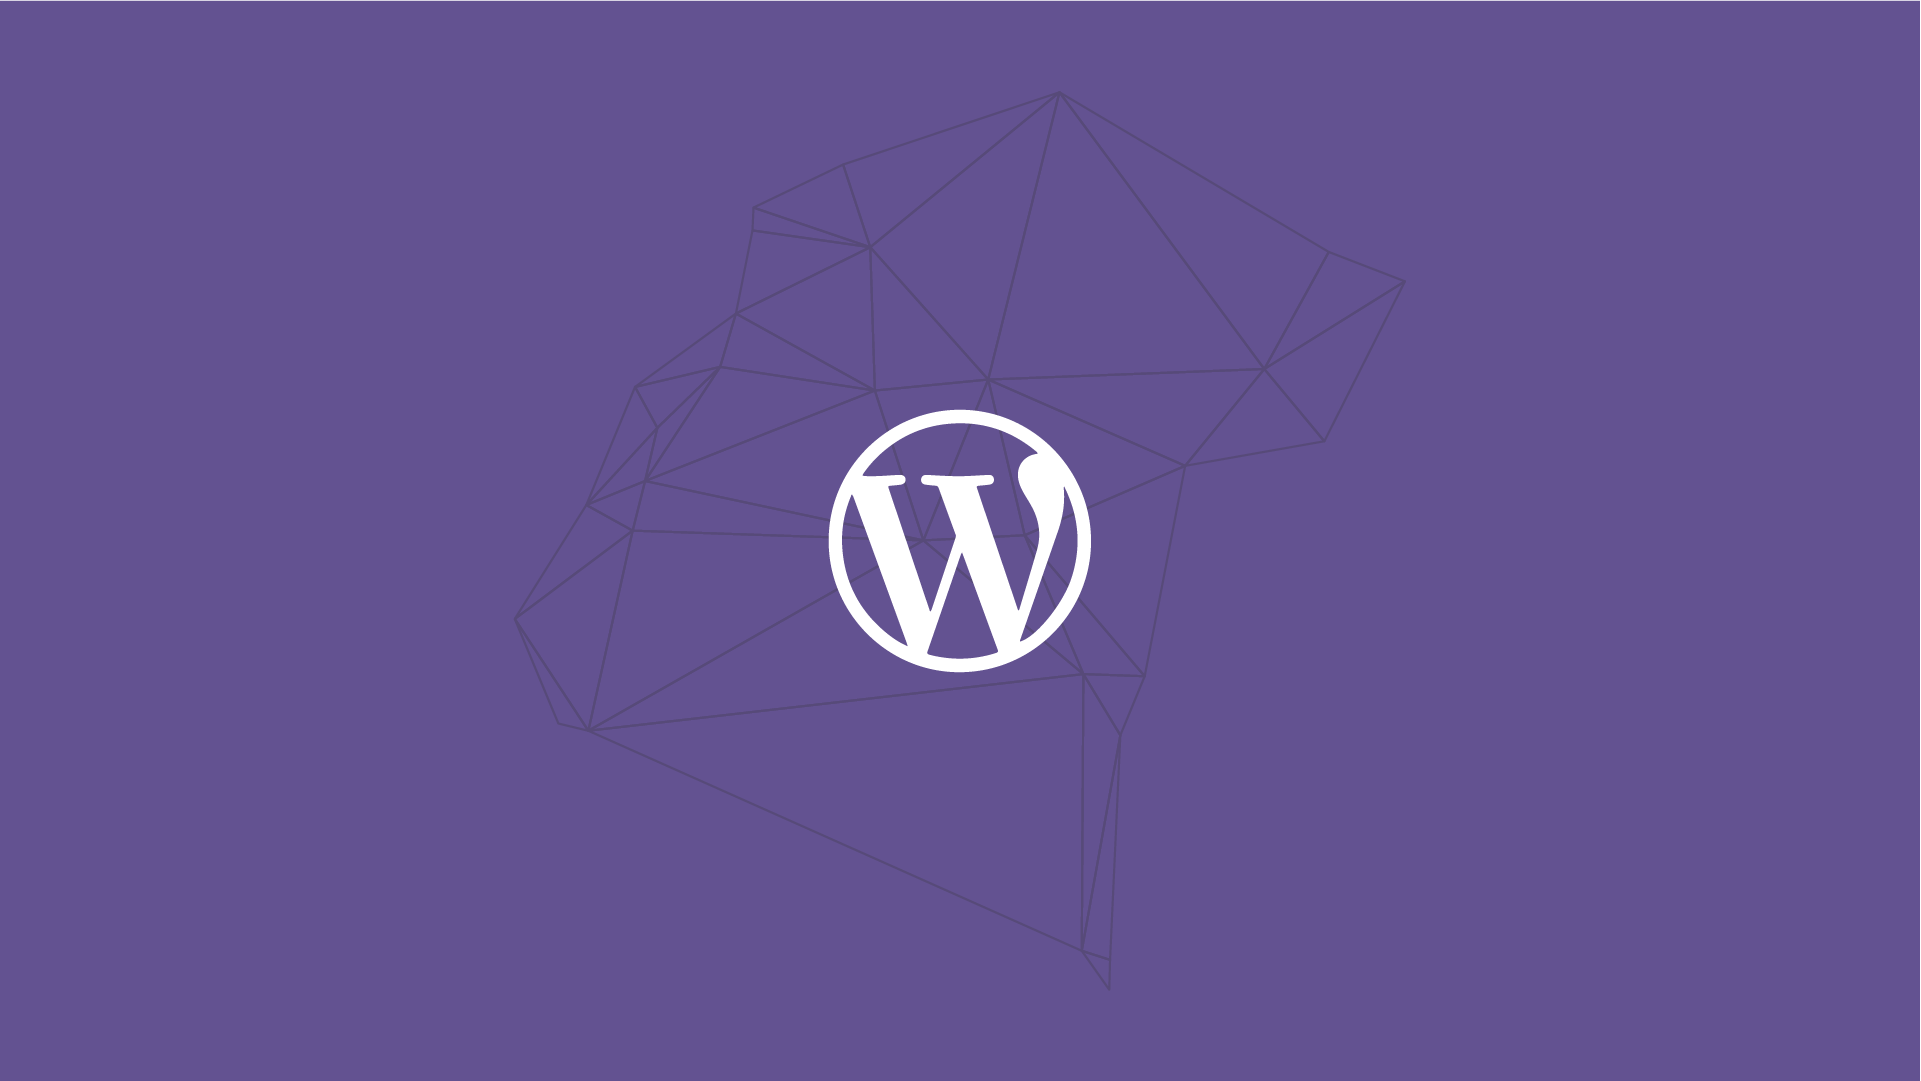 Is WordPress dead?